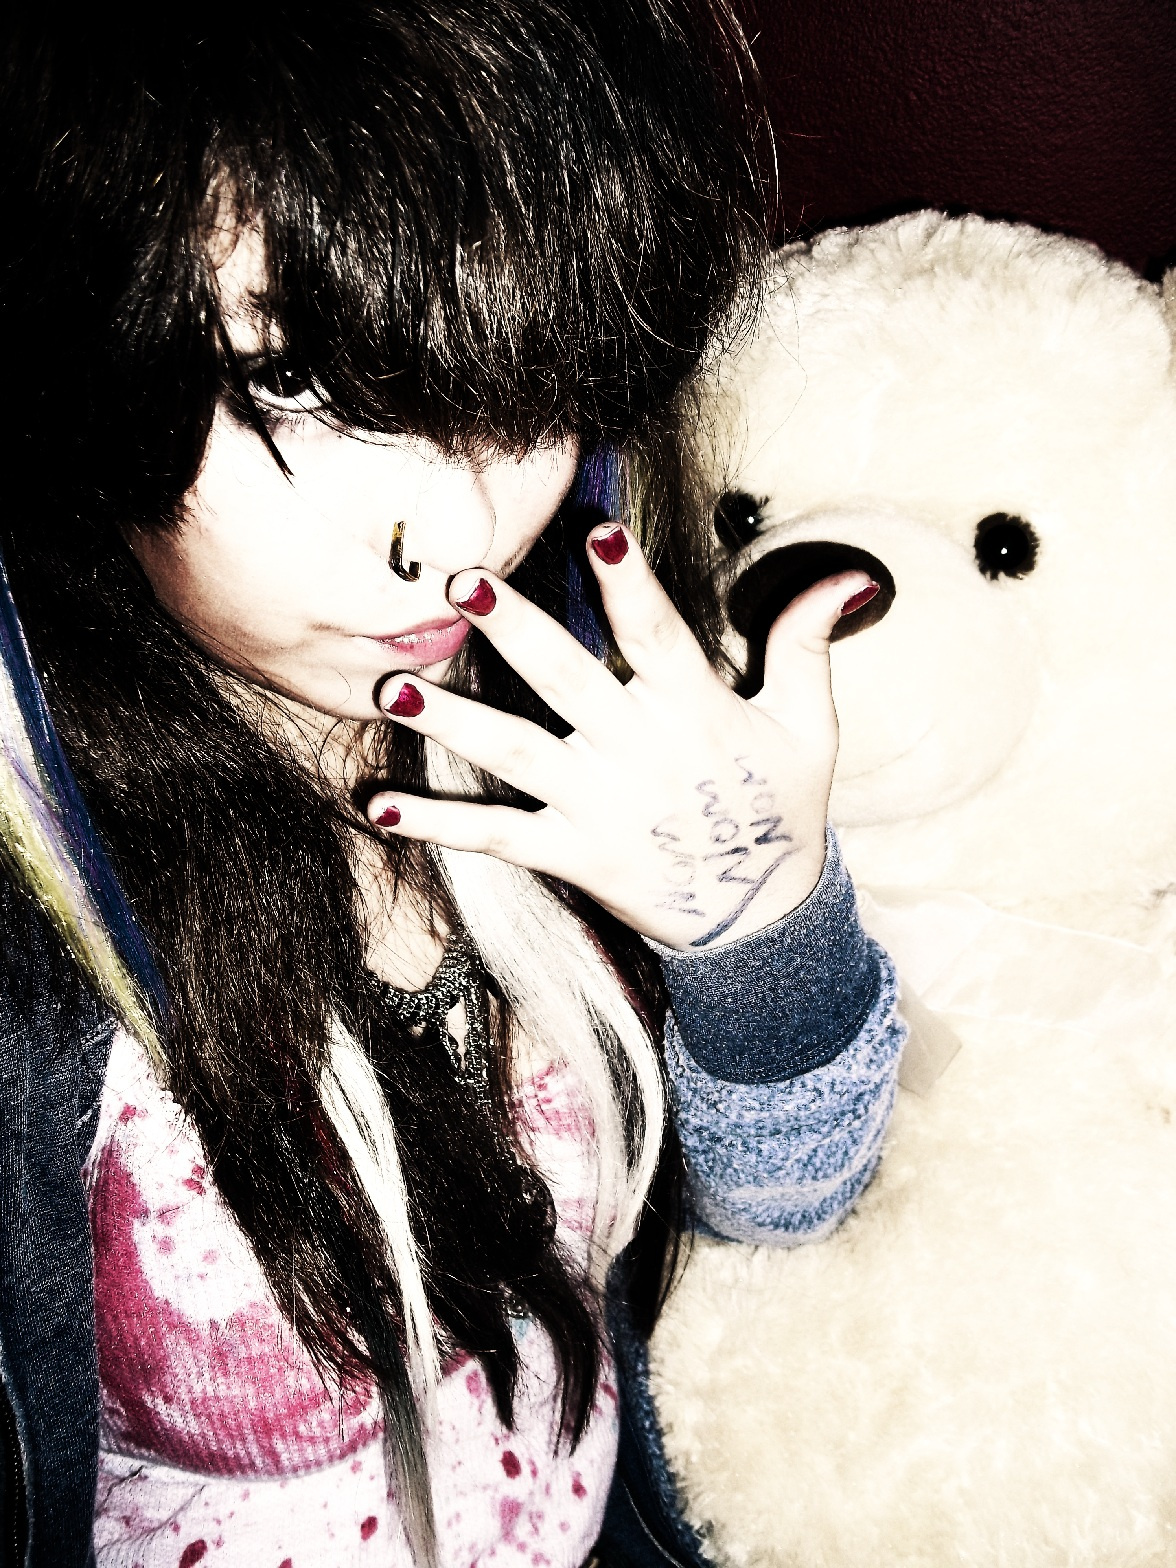 Emo and scene kids images c c lo t t c hd wallpaper and background photos 23432067 - Emo scene wallpaper ...